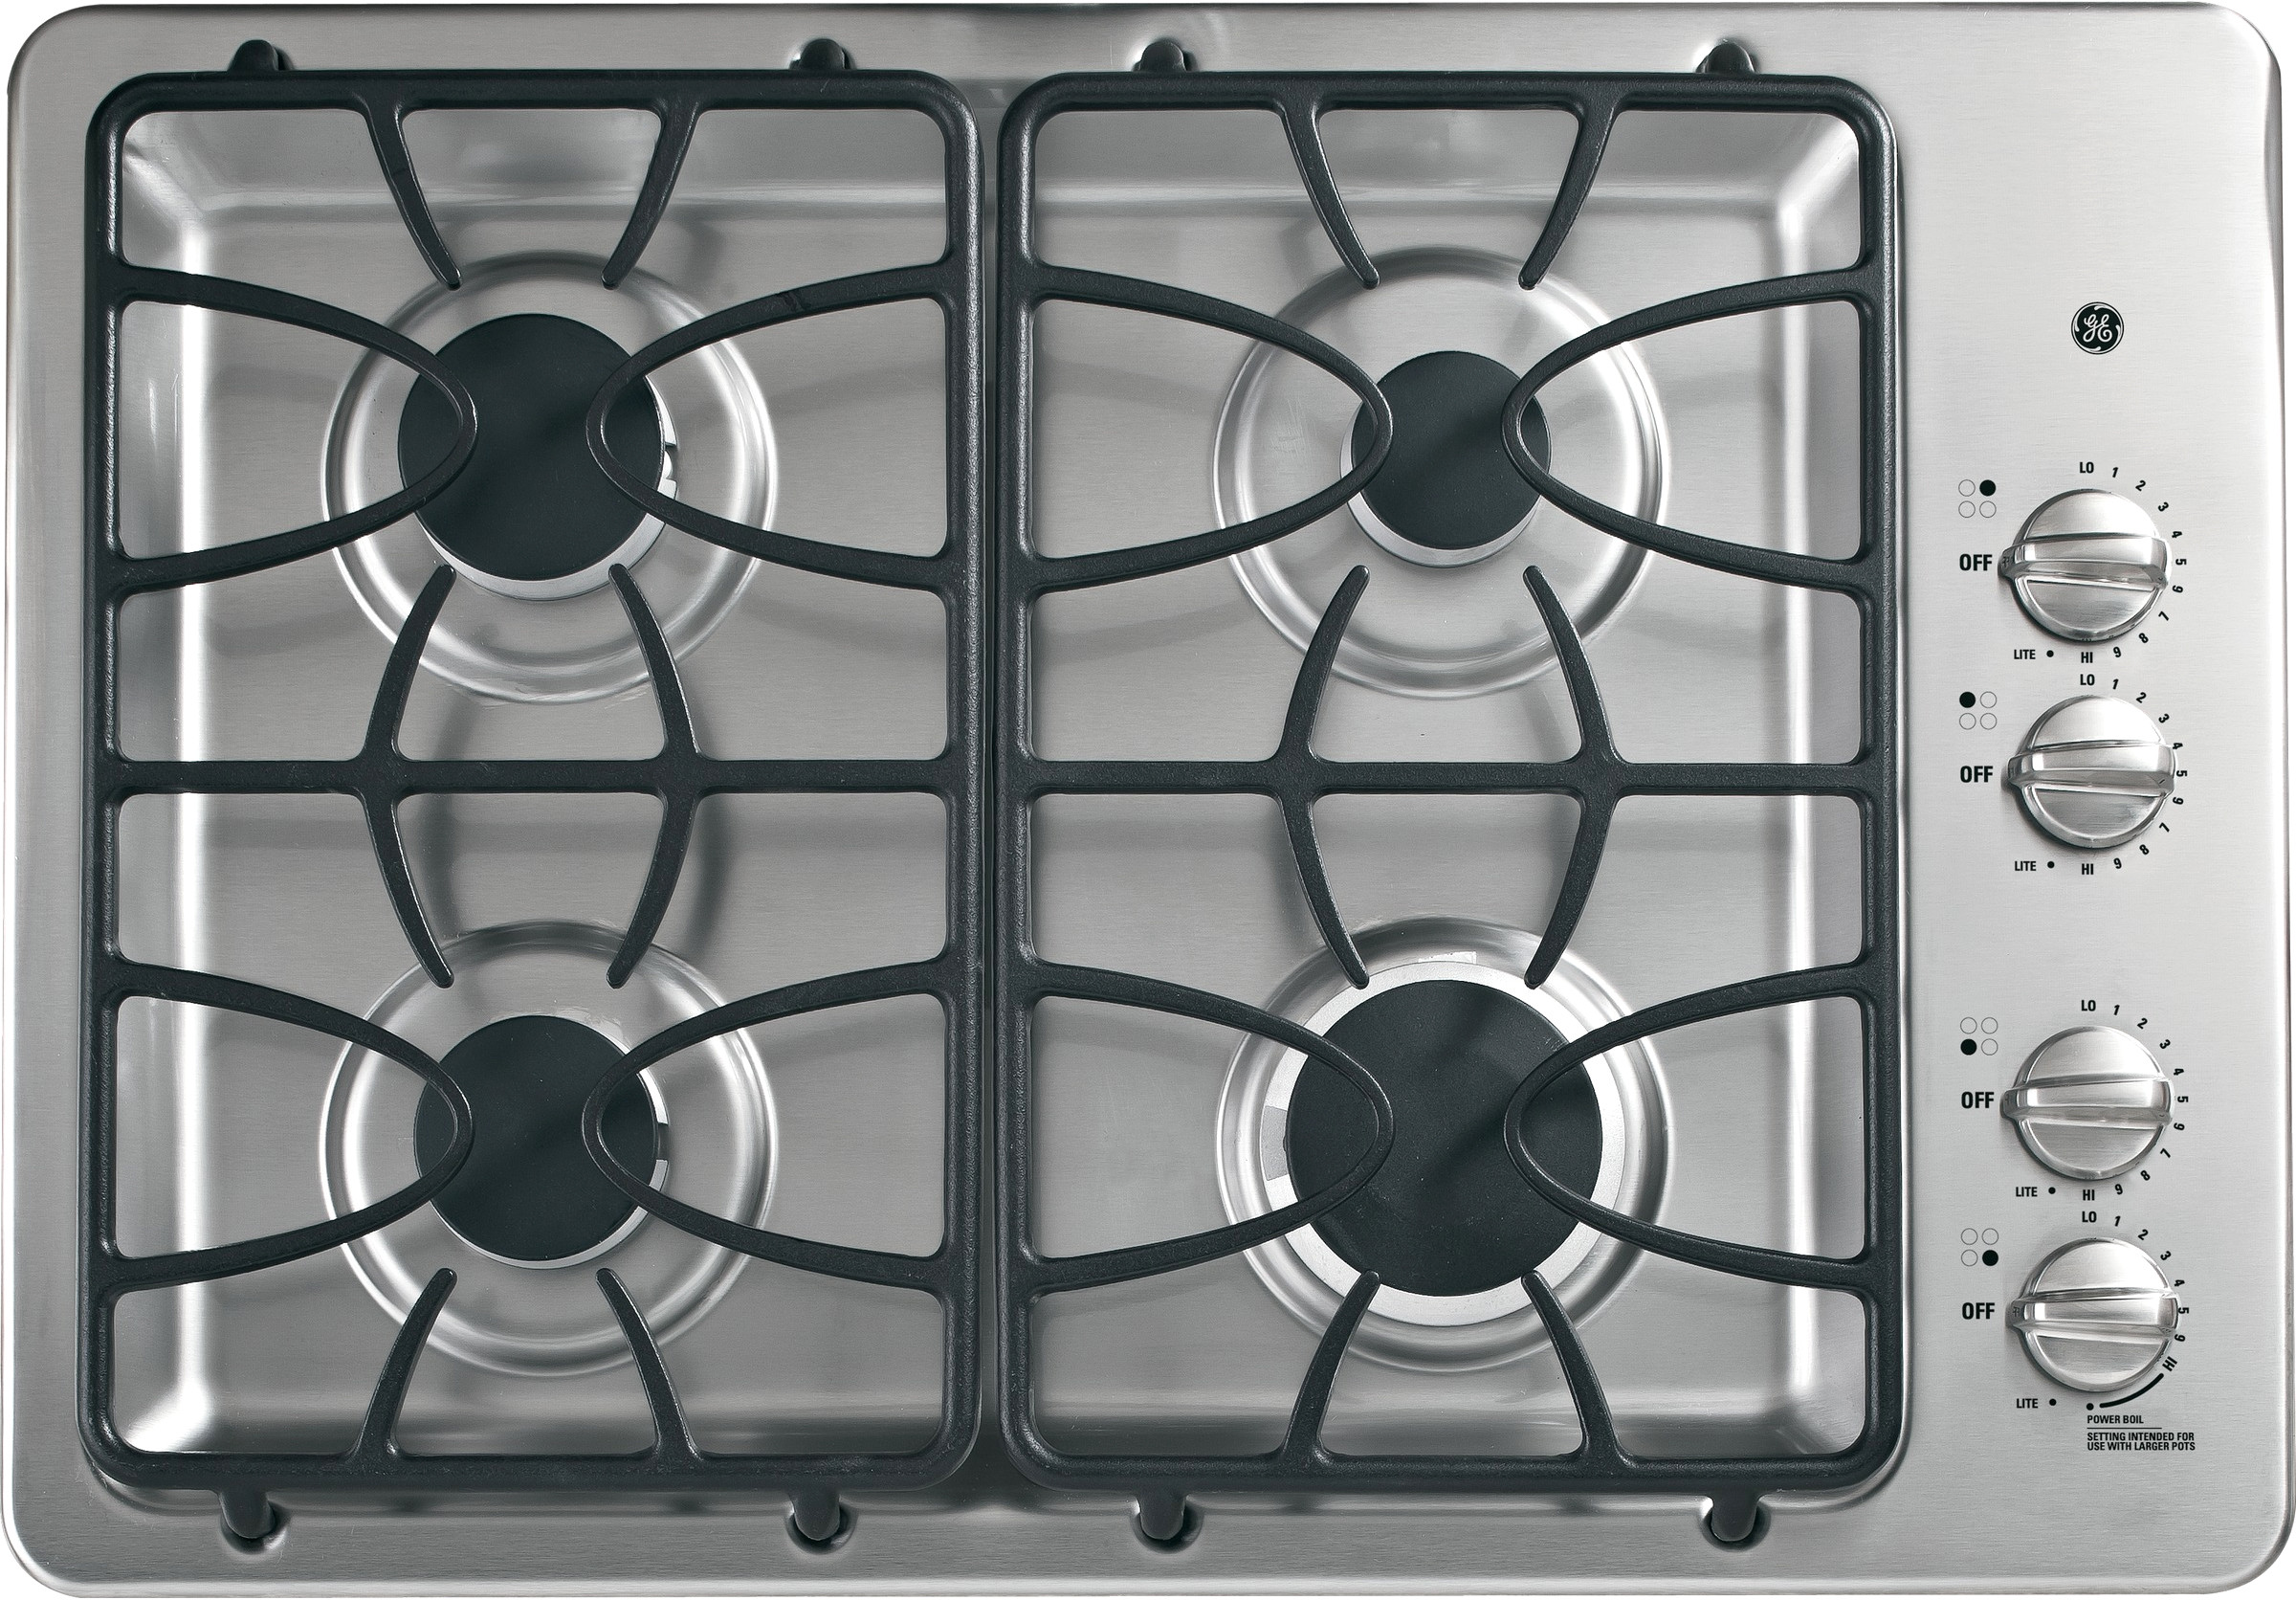 Ge Jgp333setss 30 Inch Gas Cooktop With